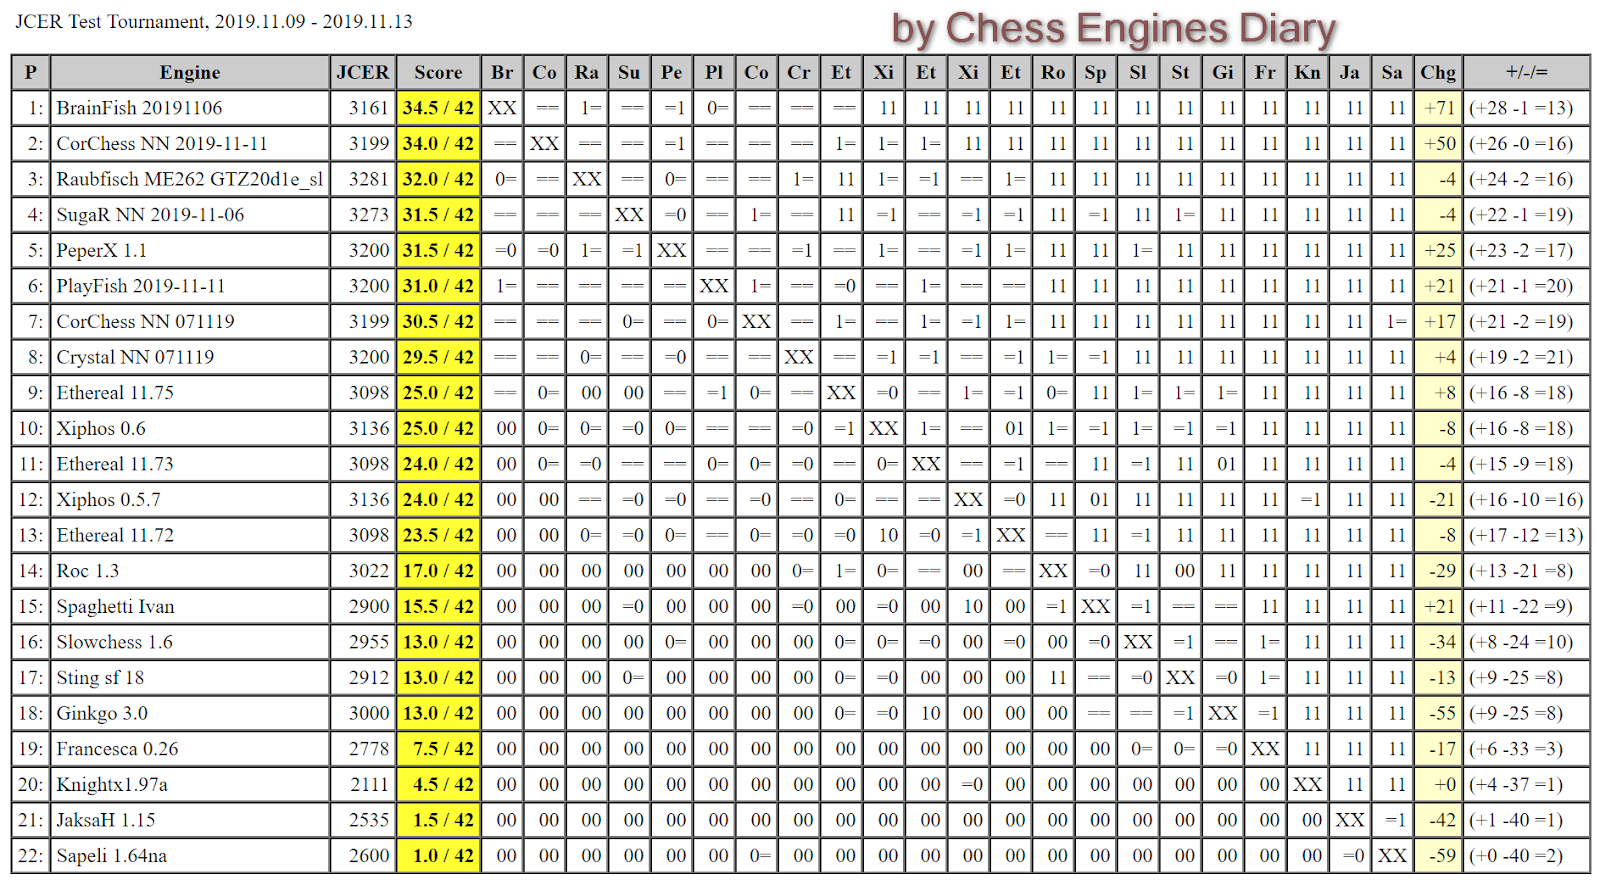 JCER (Jurek Chess Engines Rating) tournaments - Page 20 2019.11.09.JCERTestTournamentScid.html